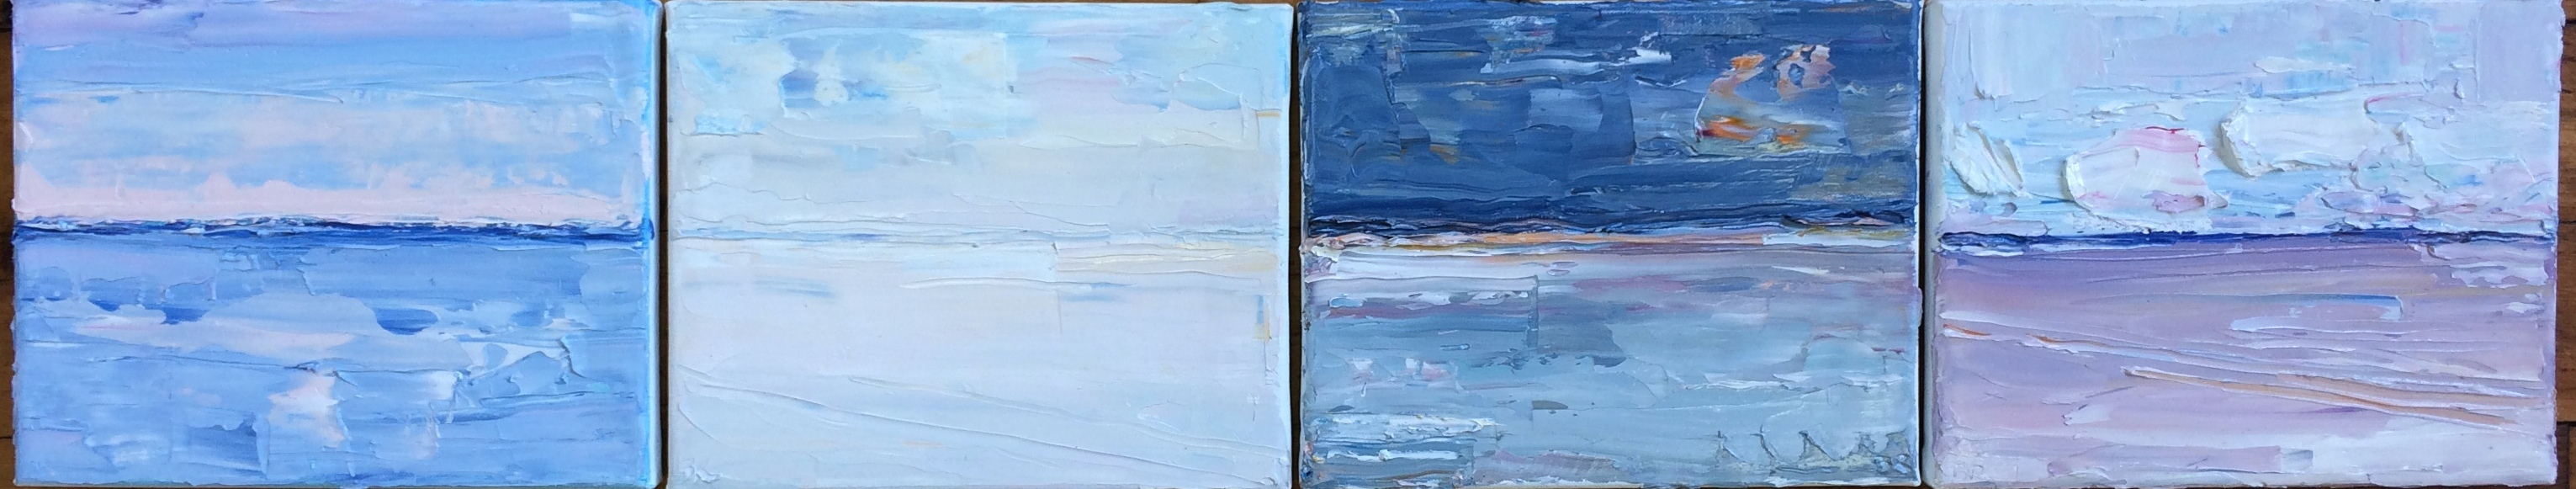 Aggregate Abstractions and The Sea Sky / Sea Series, Cape Ann, MA